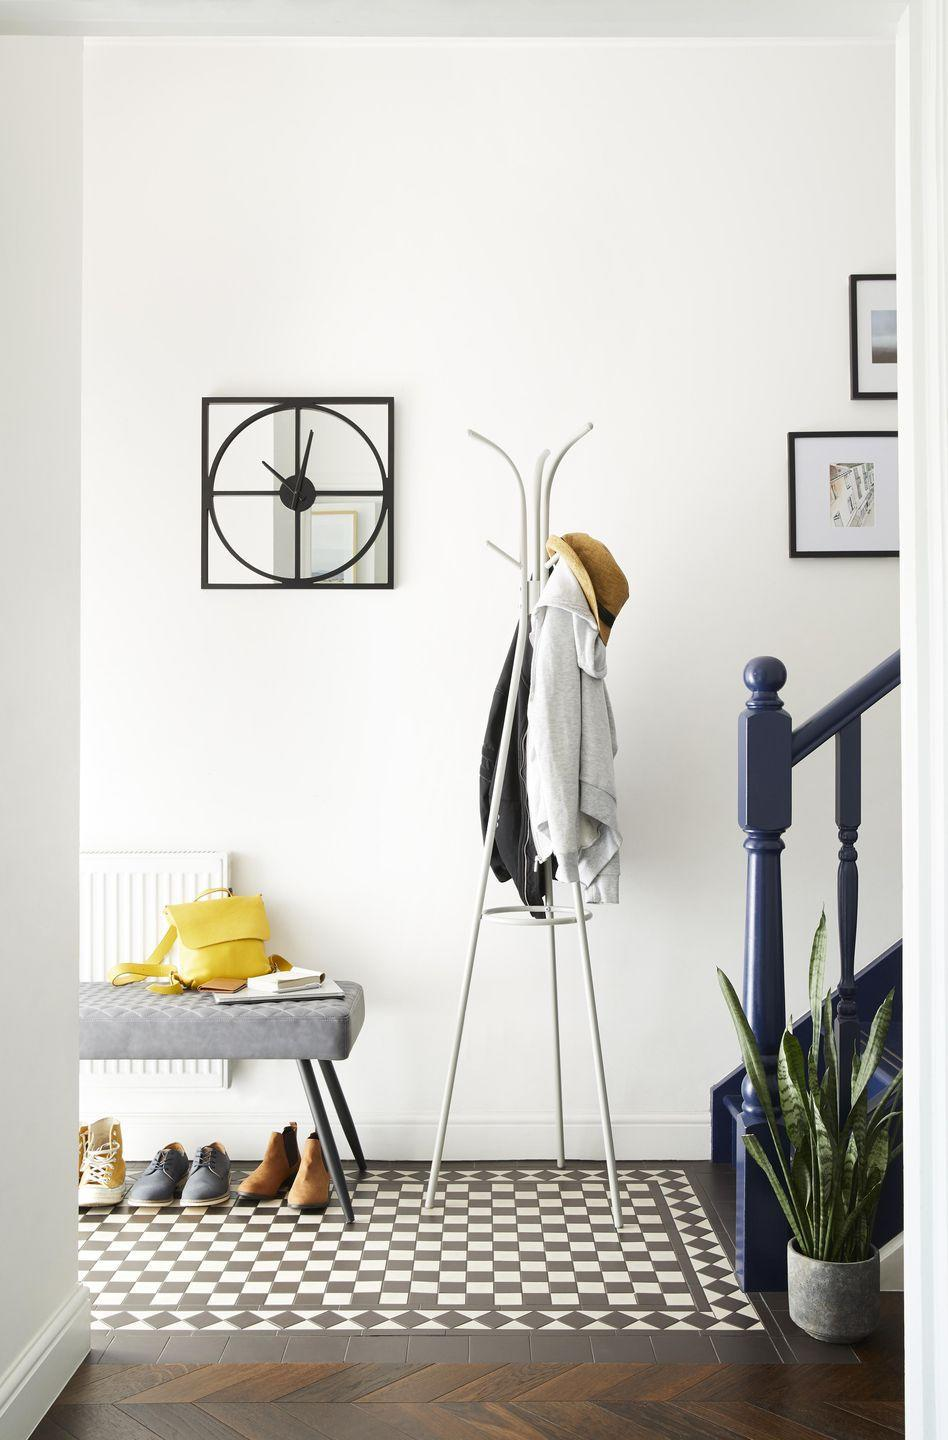 """<p>Tiles are an excellent choice for the hallway. Not only are they impervious to wet and muddy boots, but they also set the scene for bold, statement style. </p><p>If you're on a budget, head over to <a href=""""https://go.redirectingat.com?id=127X1599956&url=https%3A%2F%2Fwww.homebase.co.uk%2Fflooring-tiling%2Ftiling%2Ffloor-wall-tiles.list&sref=https%3A%2F%2Fwww.housebeautiful.com%2Fuk%2Fdecorate%2Fhallway%2Fg36617179%2Finstagrammable-hallway-ideas%2F"""" rel=""""nofollow noopener"""" target=""""_blank"""" data-ylk=""""slk:Homebase"""" class=""""link rapid-noclick-resp"""">Homebase</a> for everything from pink to classic white. For a splurge buy, consider <a href=""""https://capietra.com/"""" rel=""""nofollow noopener"""" target=""""_blank"""" data-ylk=""""slk:Ca' Pietra"""" class=""""link rapid-noclick-resp"""">Ca' Pietra</a>'s ever-popular 'Lily Pad' design. You won't regret it. </p><p>'When choosing flooring, you need to think about how the space is going to be used, and to consider the practicalities; different floor coverings are suitable for different conditions,' advises Jenna Kane, Product Development at <a href=""""https://www.kersaintcobb.co.uk/"""" rel=""""nofollow noopener"""" target=""""_blank"""" data-ylk=""""slk:Kersaint Cobb"""" class=""""link rapid-noclick-resp"""">Kersaint Cobb</a>.</p><p><a href=""""https://go.redirectingat.com?id=127X1599956&url=https%3A%2F%2Fwww.dunelm.com%2F&sref=https%3A%2F%2Fwww.housebeautiful.com%2Fuk%2Fdecorate%2Fhallway%2Fg36617179%2Finstagrammable-hallway-ideas%2F"""" rel=""""nofollow noopener"""" target=""""_blank"""" data-ylk=""""slk:Shop the full look at Dunelm"""" class=""""link rapid-noclick-resp"""">Shop the full look at Dunelm</a></p>"""